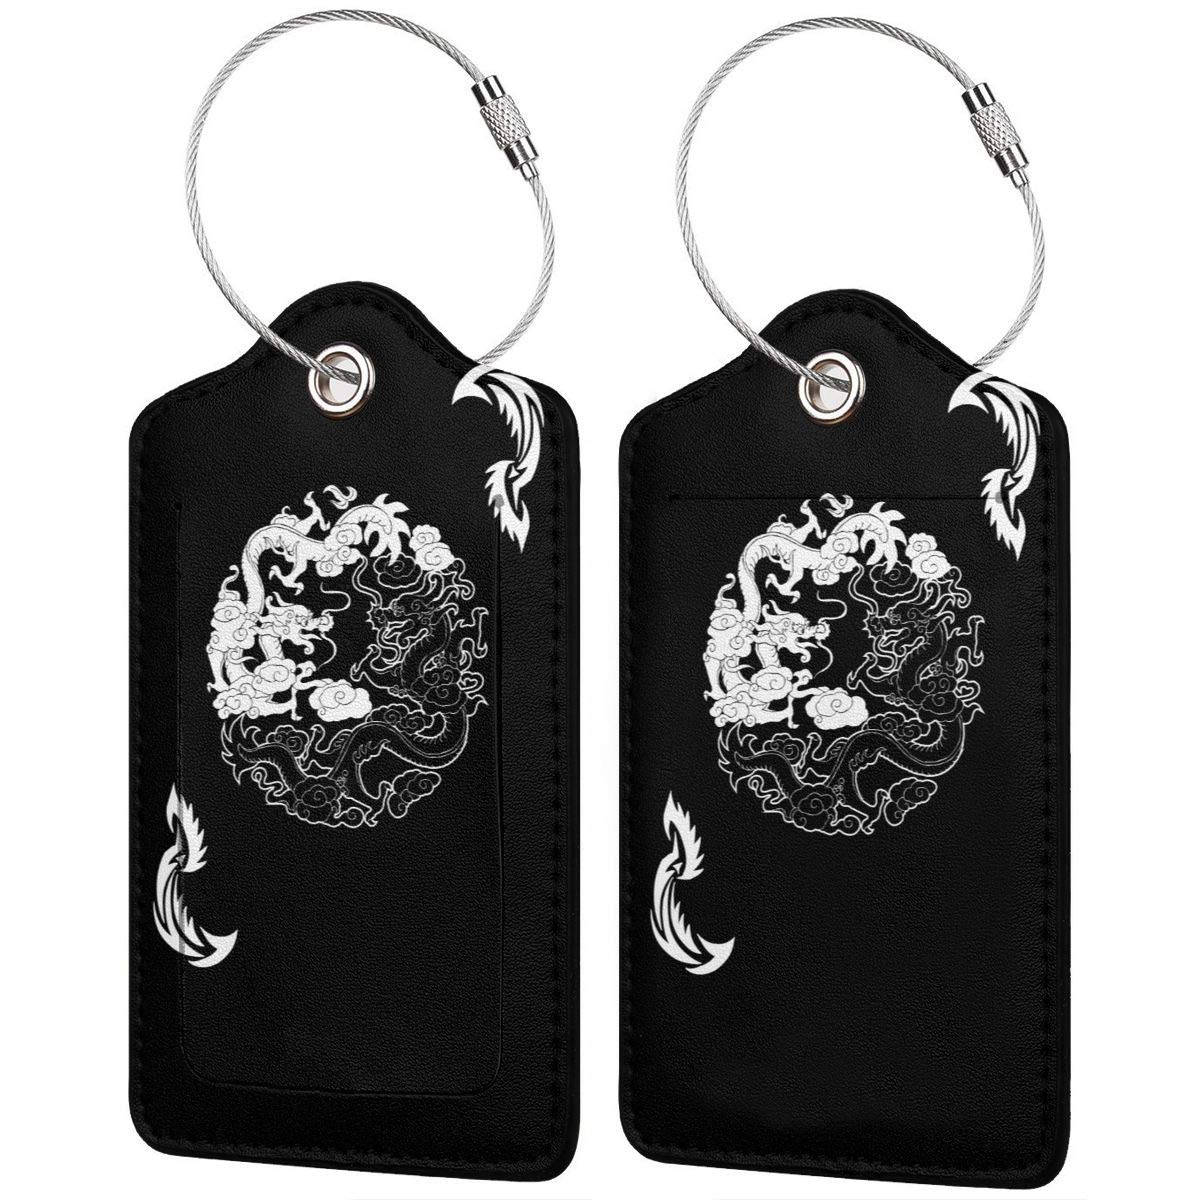 Dungeons And Dragons Yin Yang Good And Evil Pu Leather Double Sides Print Luggage Tag Mutilple Packs 1pcs,2pcs,4pcs